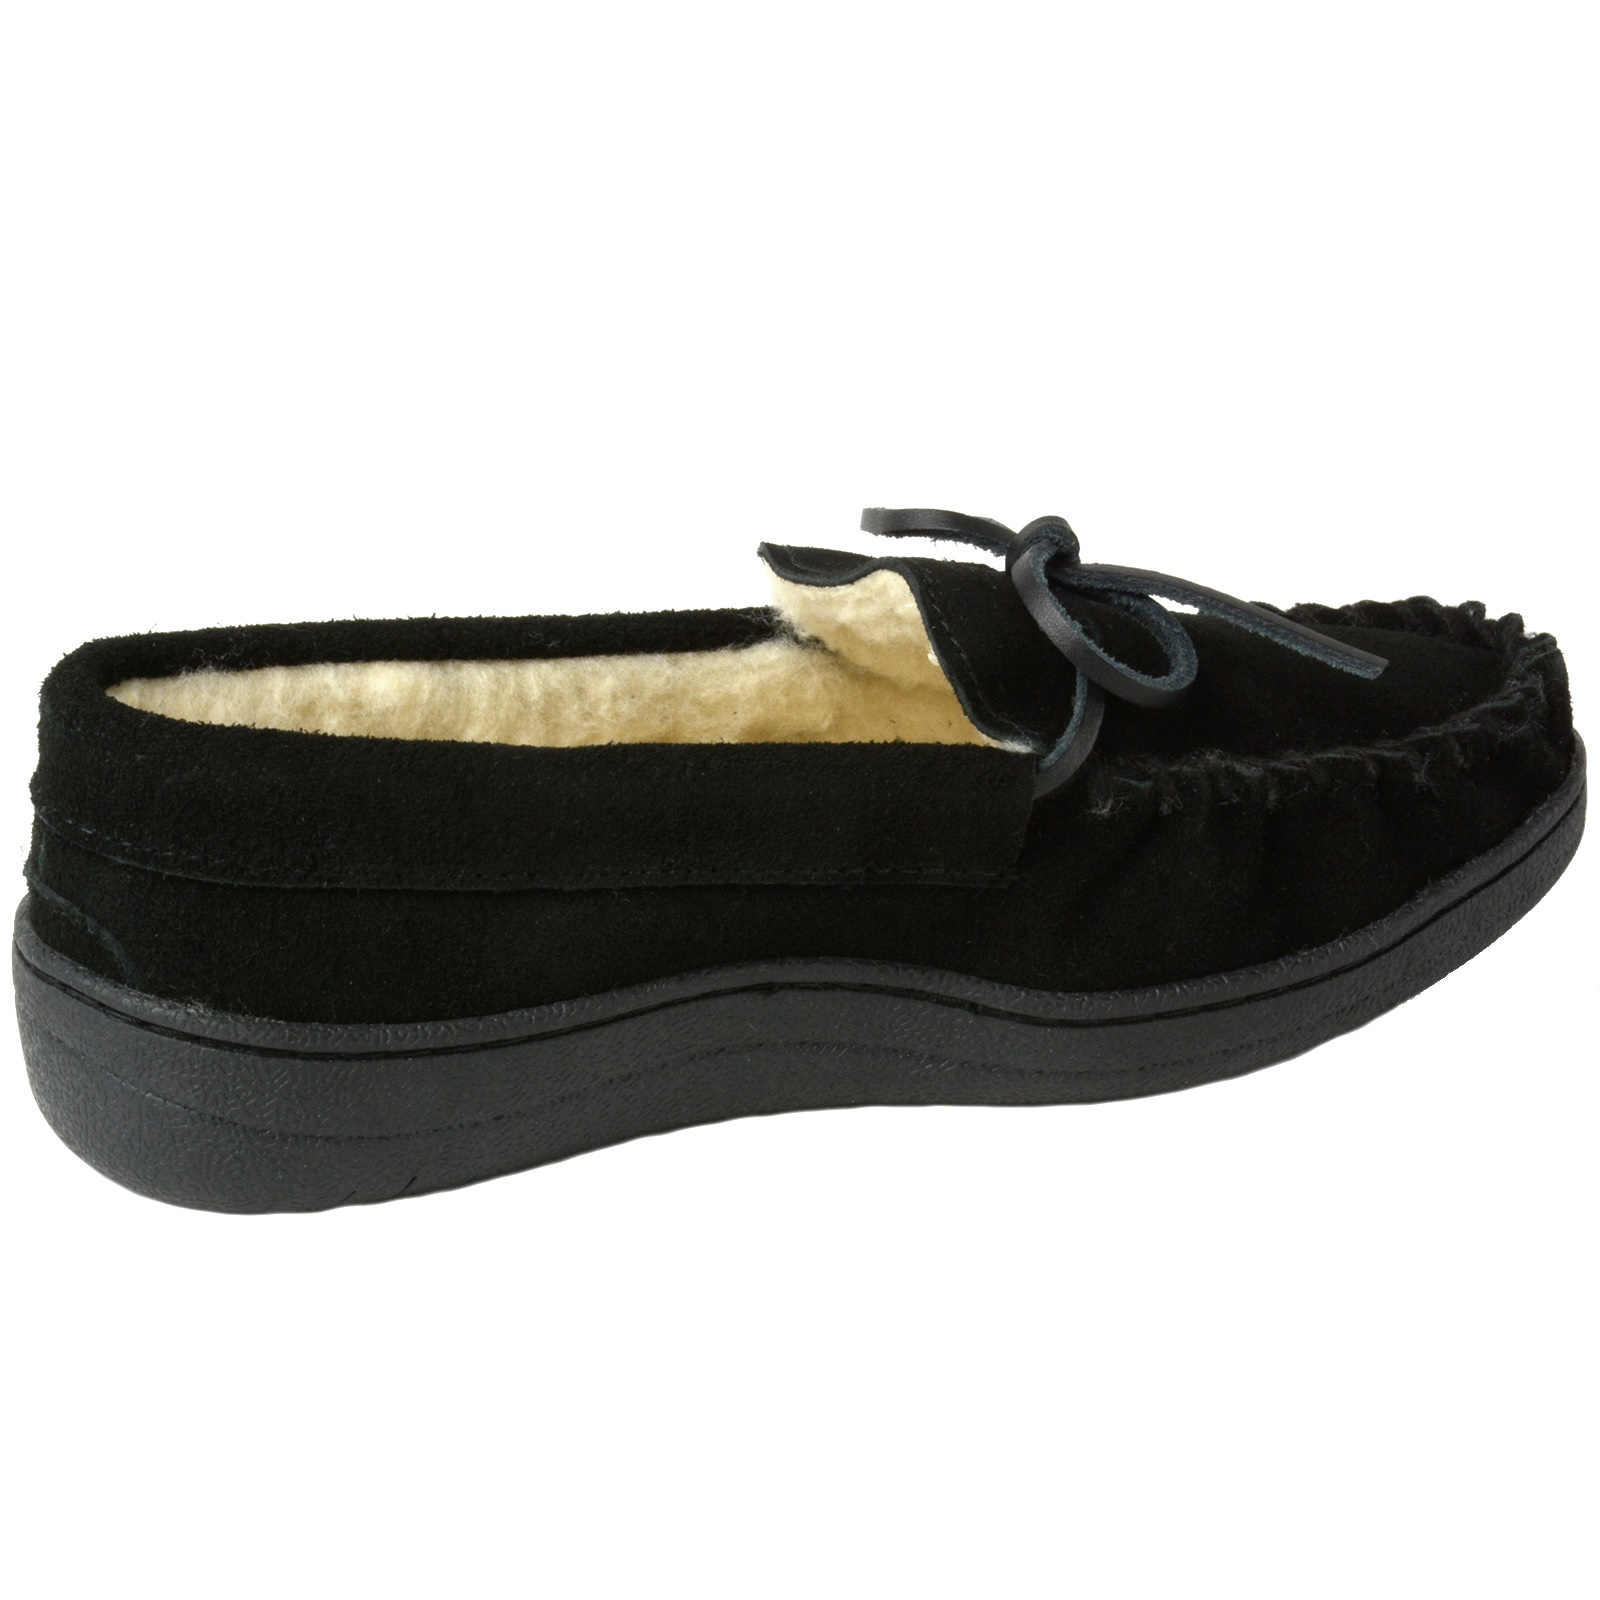 Alpine-Swiss-Sabine-Womens-Suede-Shearling-Moccasin-Slippers-House-Shoes-Slip-On miniature 14